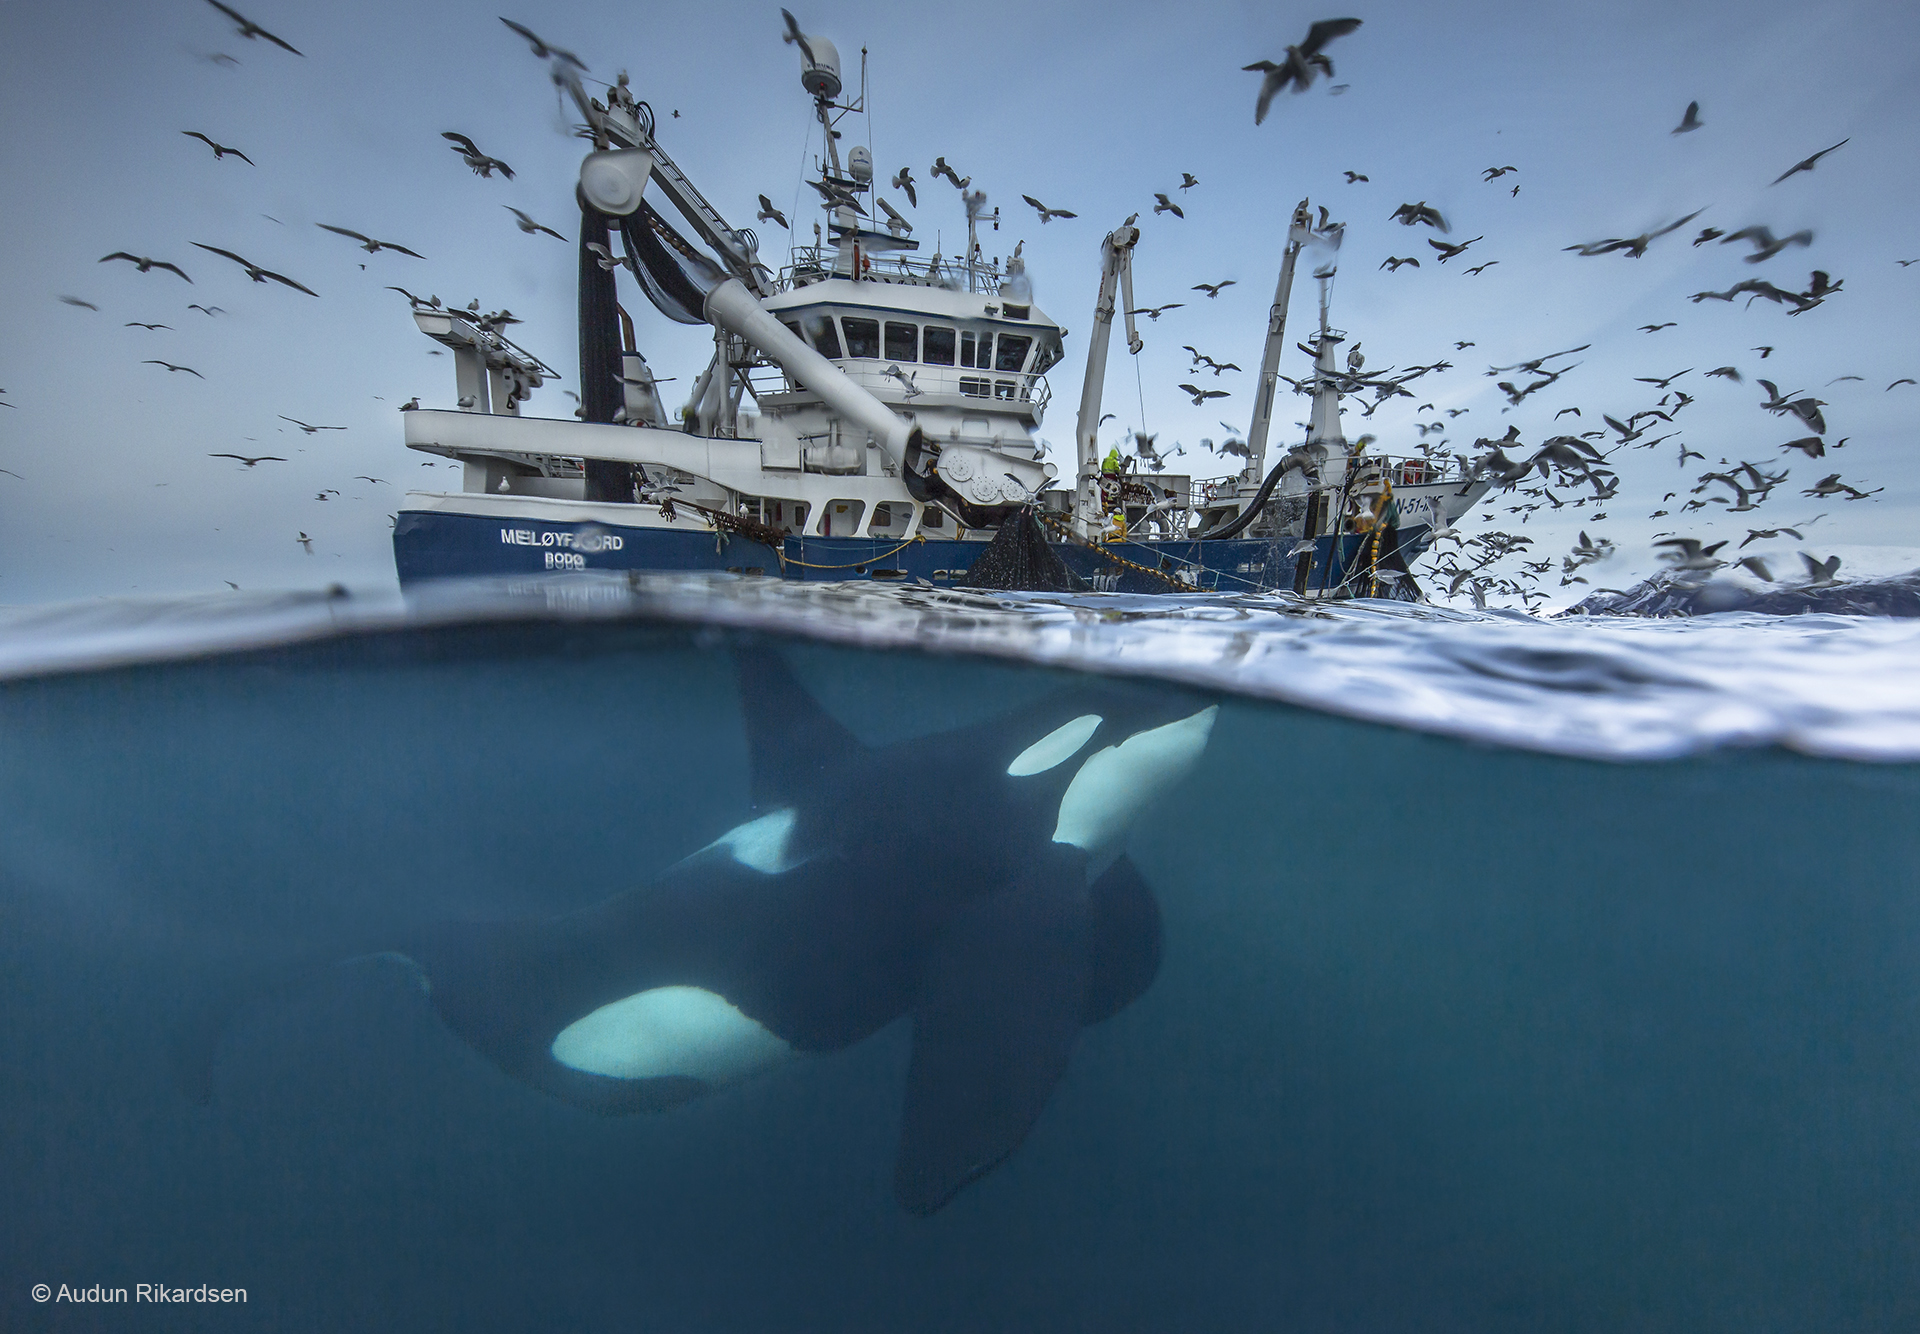 """Some fishermen may use the whales to localize the herring shoals. Likewise, many whales have during the years learned the sounds from specific fishing boat when they retrieve their fishing gear, and thereby seek to the boats with the hope to get a """"free meal"""". This is seemingly a win-win-situations for both parties, but some whales also actively tries to steal the fish form the fishing gear, which can in some cases destroy both the fishing gear and the herring caches. This has led to a debate about the fishing quotas and the interactions between whales and fishing boats. These interactions have also lead to an increasing number of accident where the whales have been entangled in the fishing gear. I developed my own underwater housing to be able to take split pictures like this under very low light conditions. Ordinary underwater housings for split pictures will not work due to several optical challenges during low light conditions. (some dust/ flare due to salt crustal on the underwater housing glass is removed in the digital post-processing). Canon 5DIII, Canon 11-24 f4; 1/200 sec; f/6,3; ISO 640, self made underwater housing, Lee filter 1.2."""